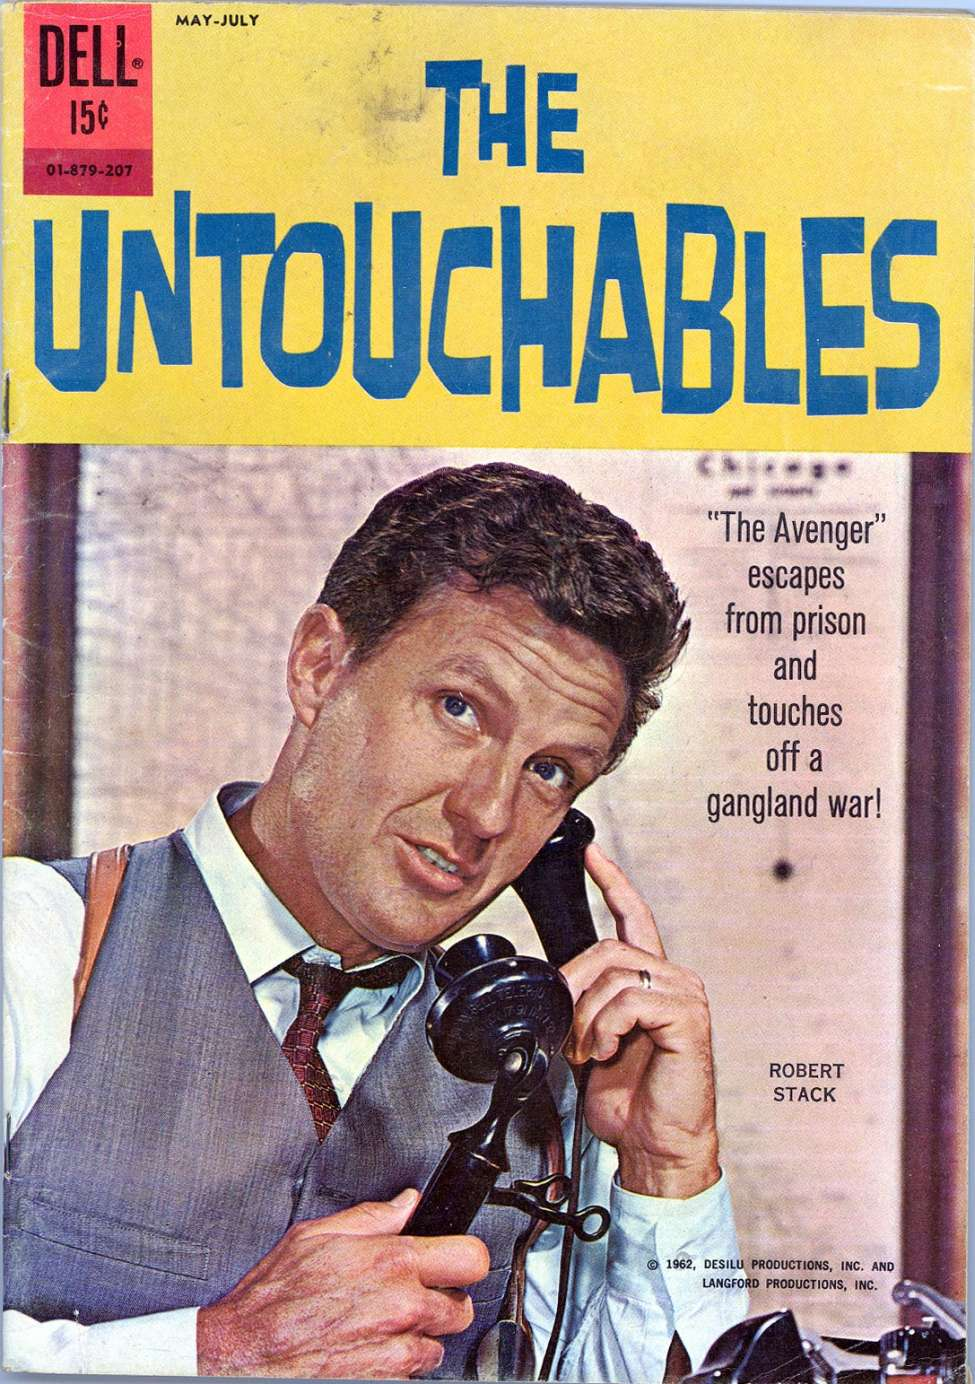 Comic Book Cover For The Untouchables 01-879-207 [3]